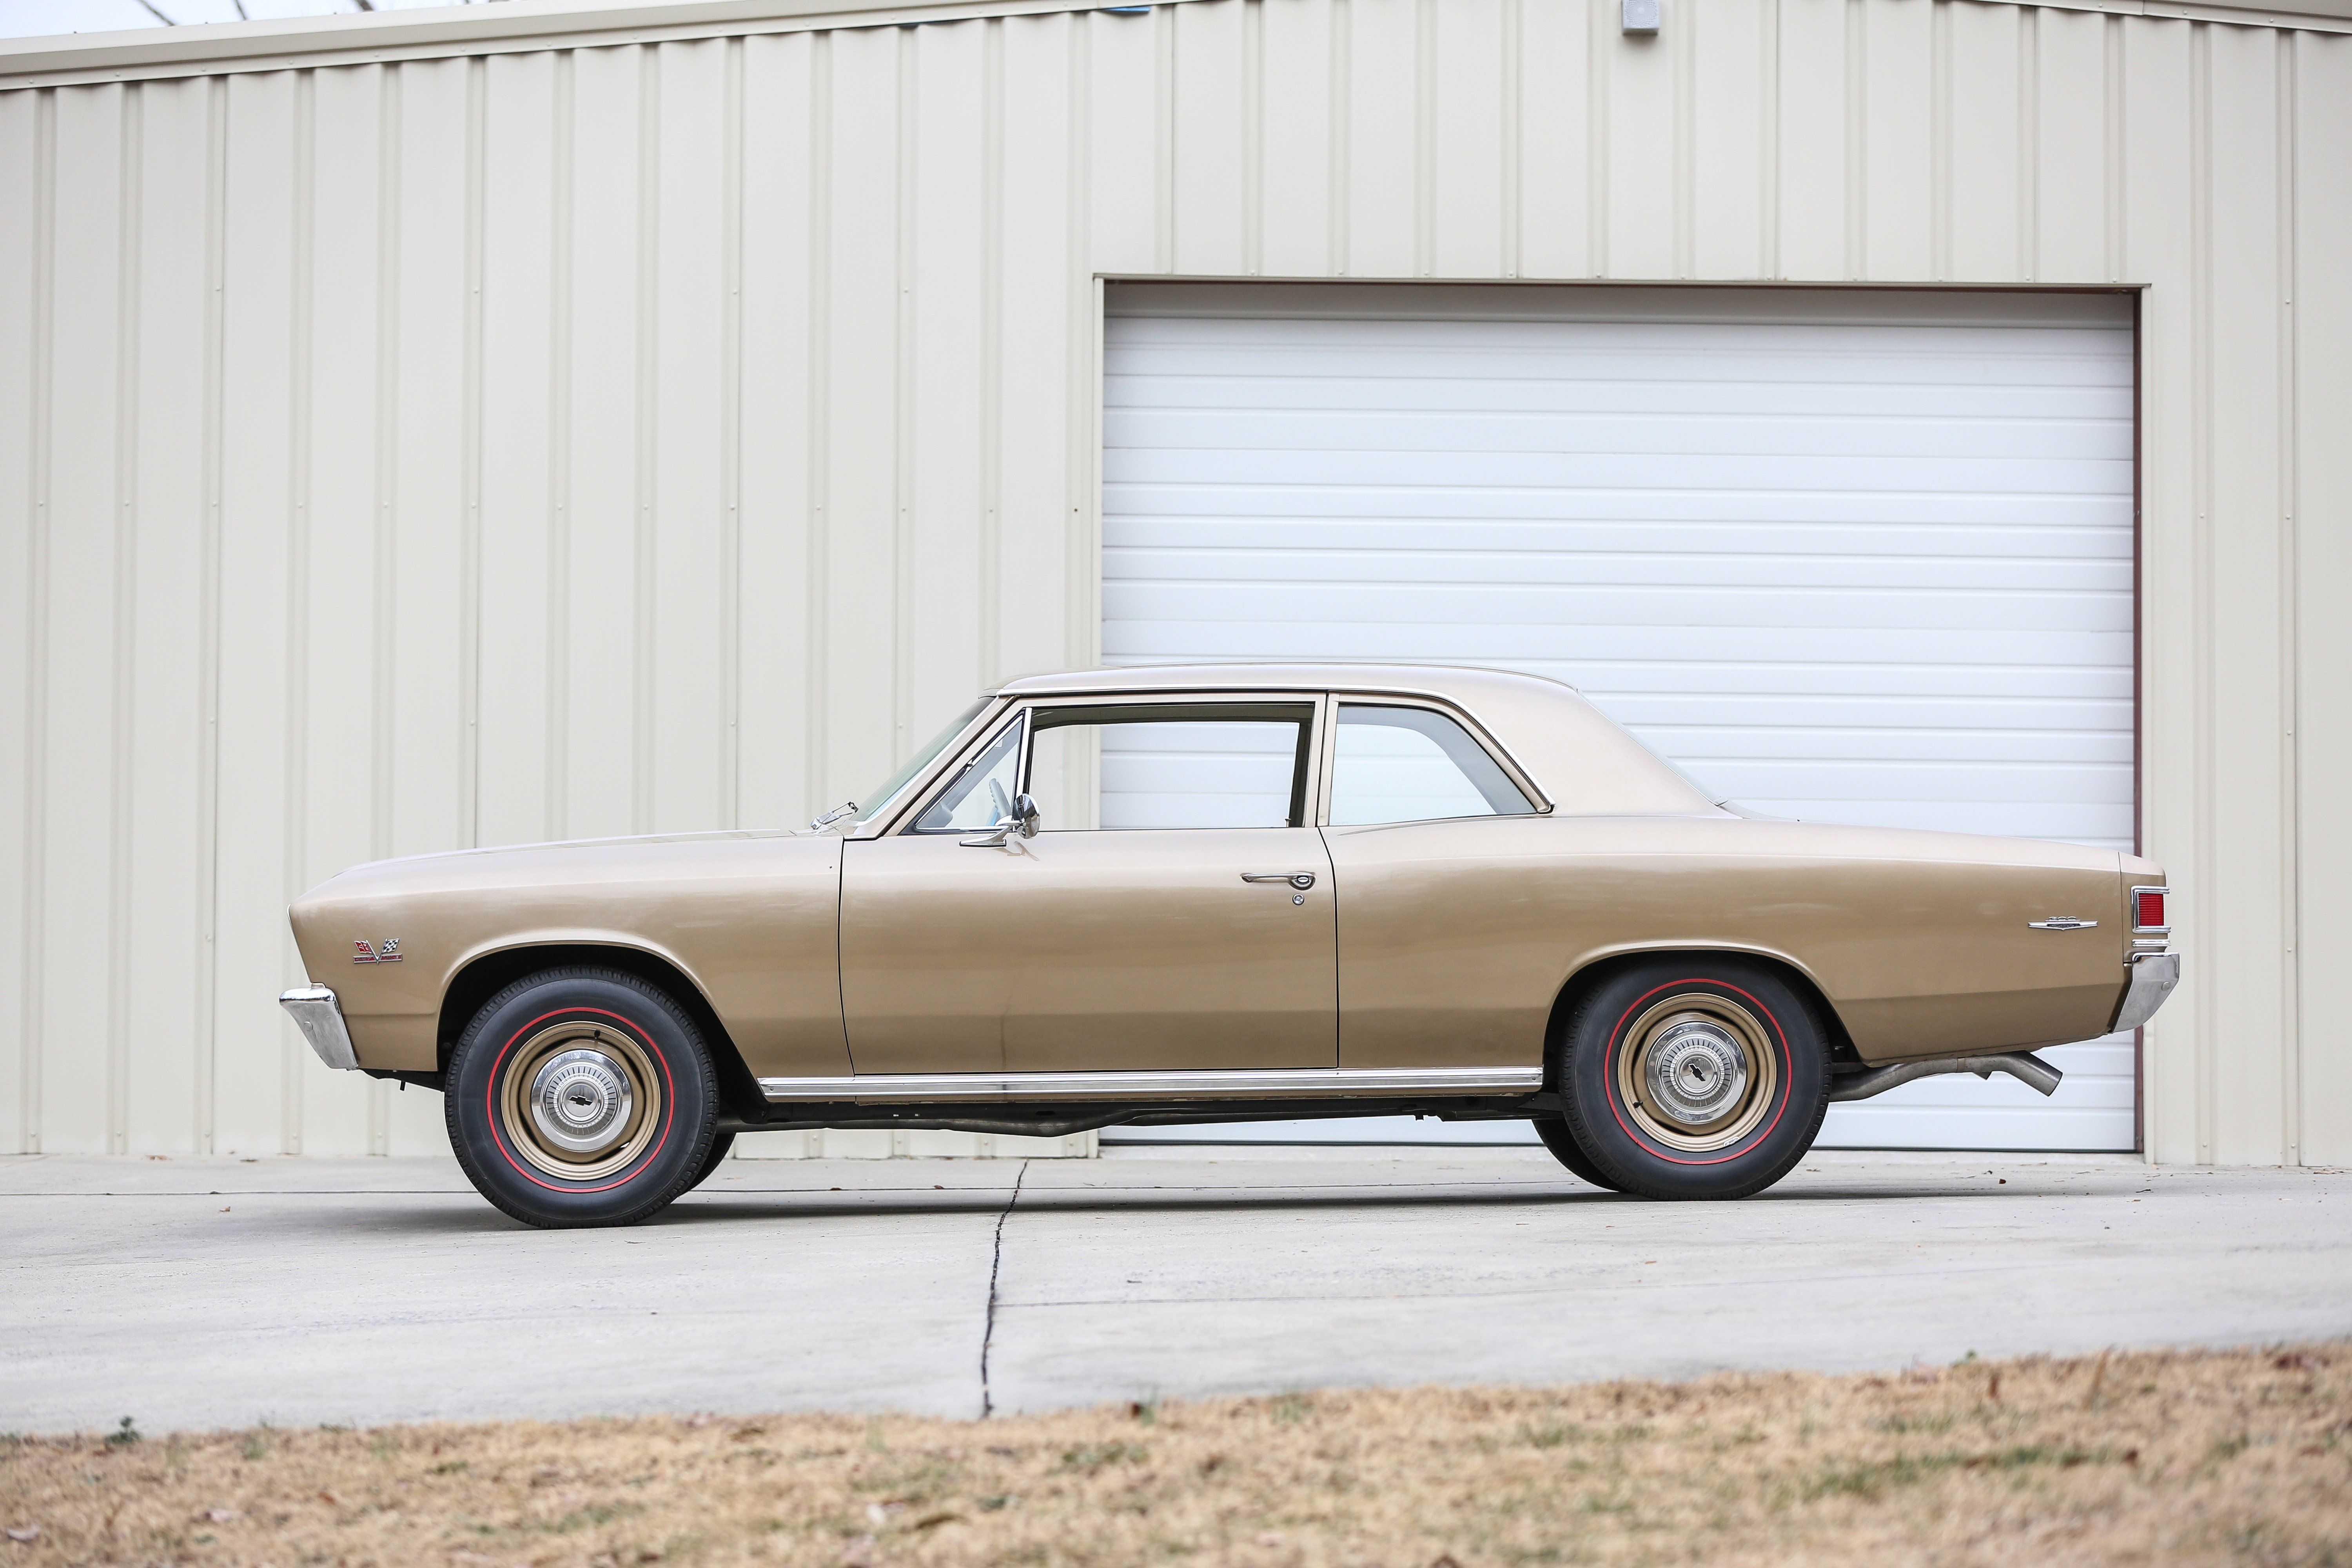 1967 Chevrolet Chevelle 300 Sedan Two Door Muscle Classic Old ...